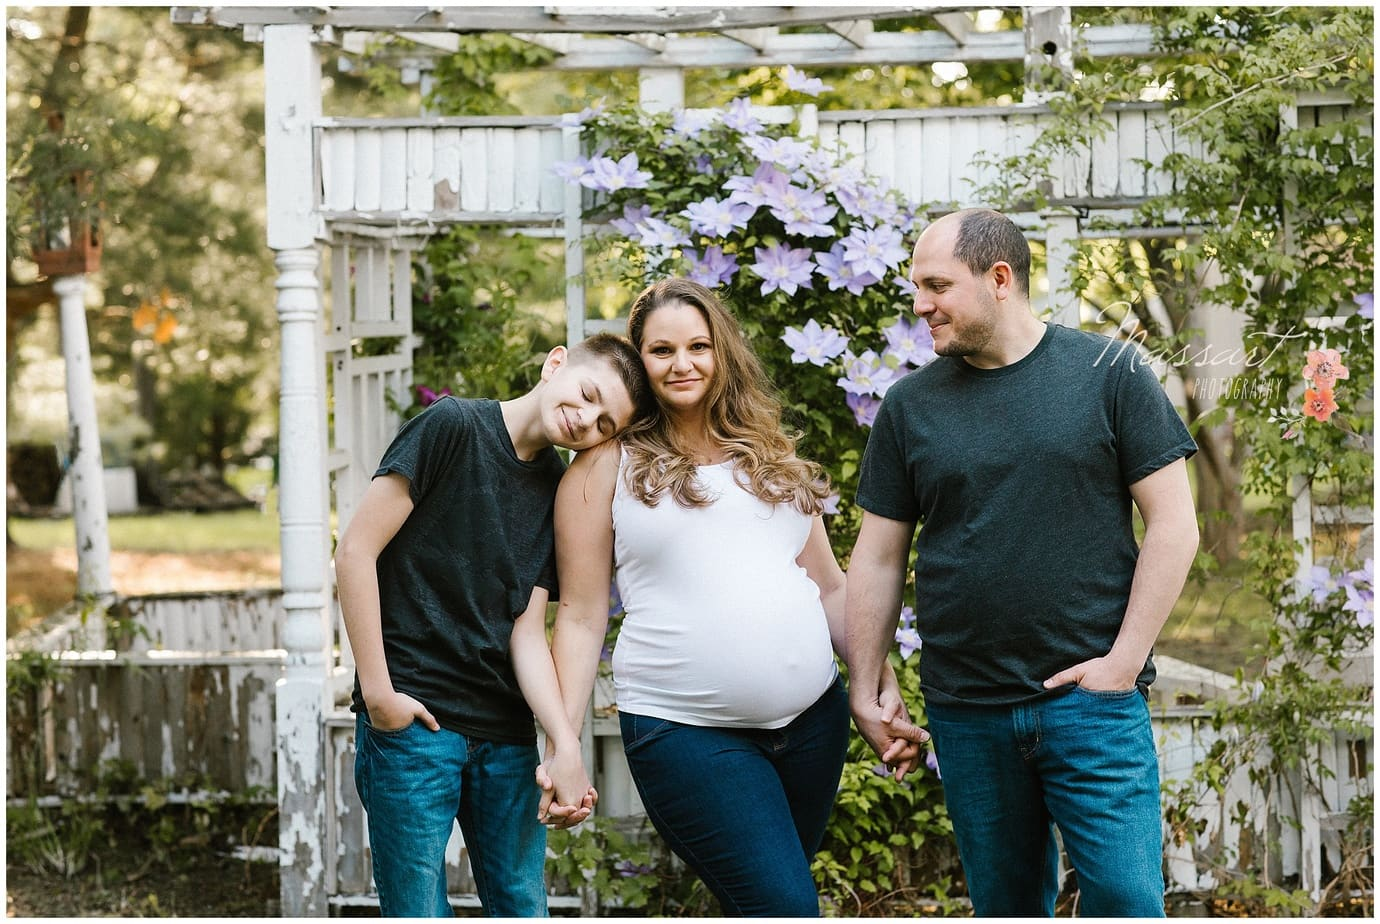 Outdoor family maternity photo shoot photographed by Massart Photography of Rhode Island.